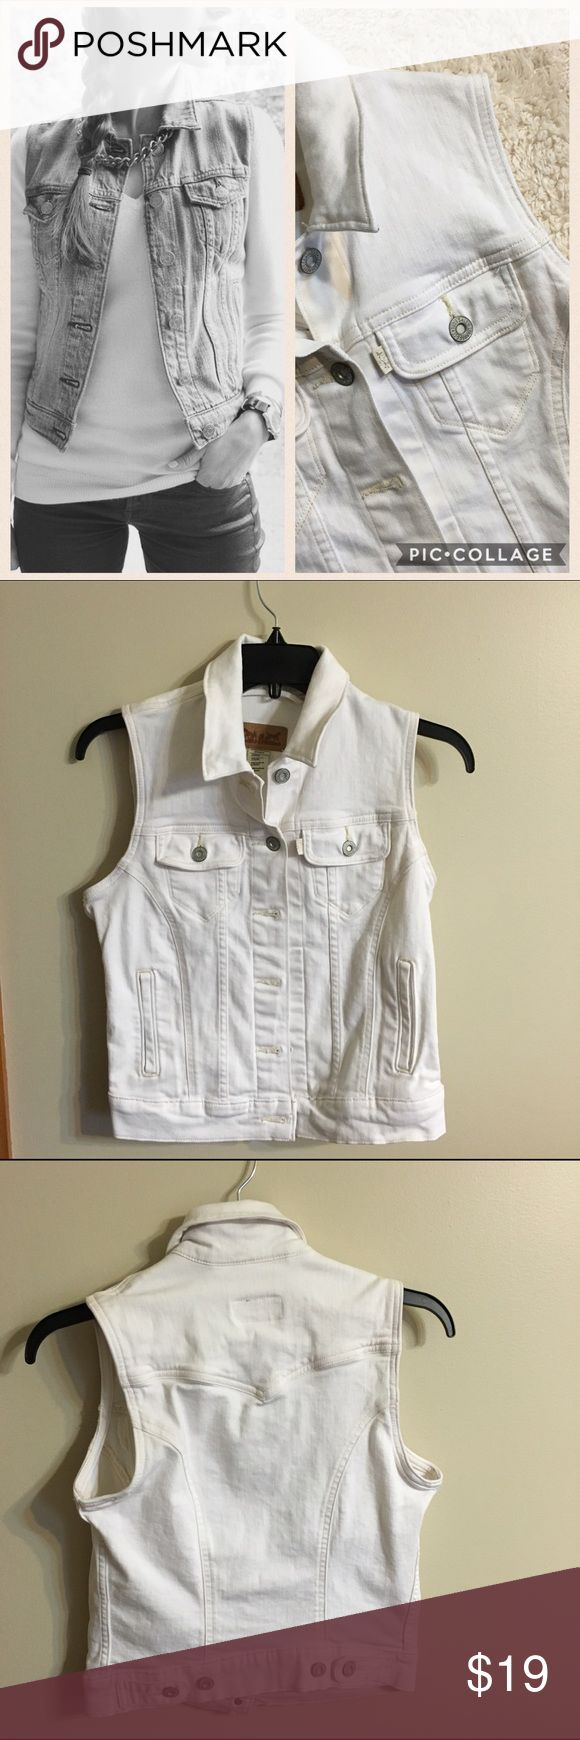 Levis White Denim Vest Levis White Denim Vest Like New Worn Once Size Small No Size Tag NO Stains! Levi's Jackets & Coats Vests